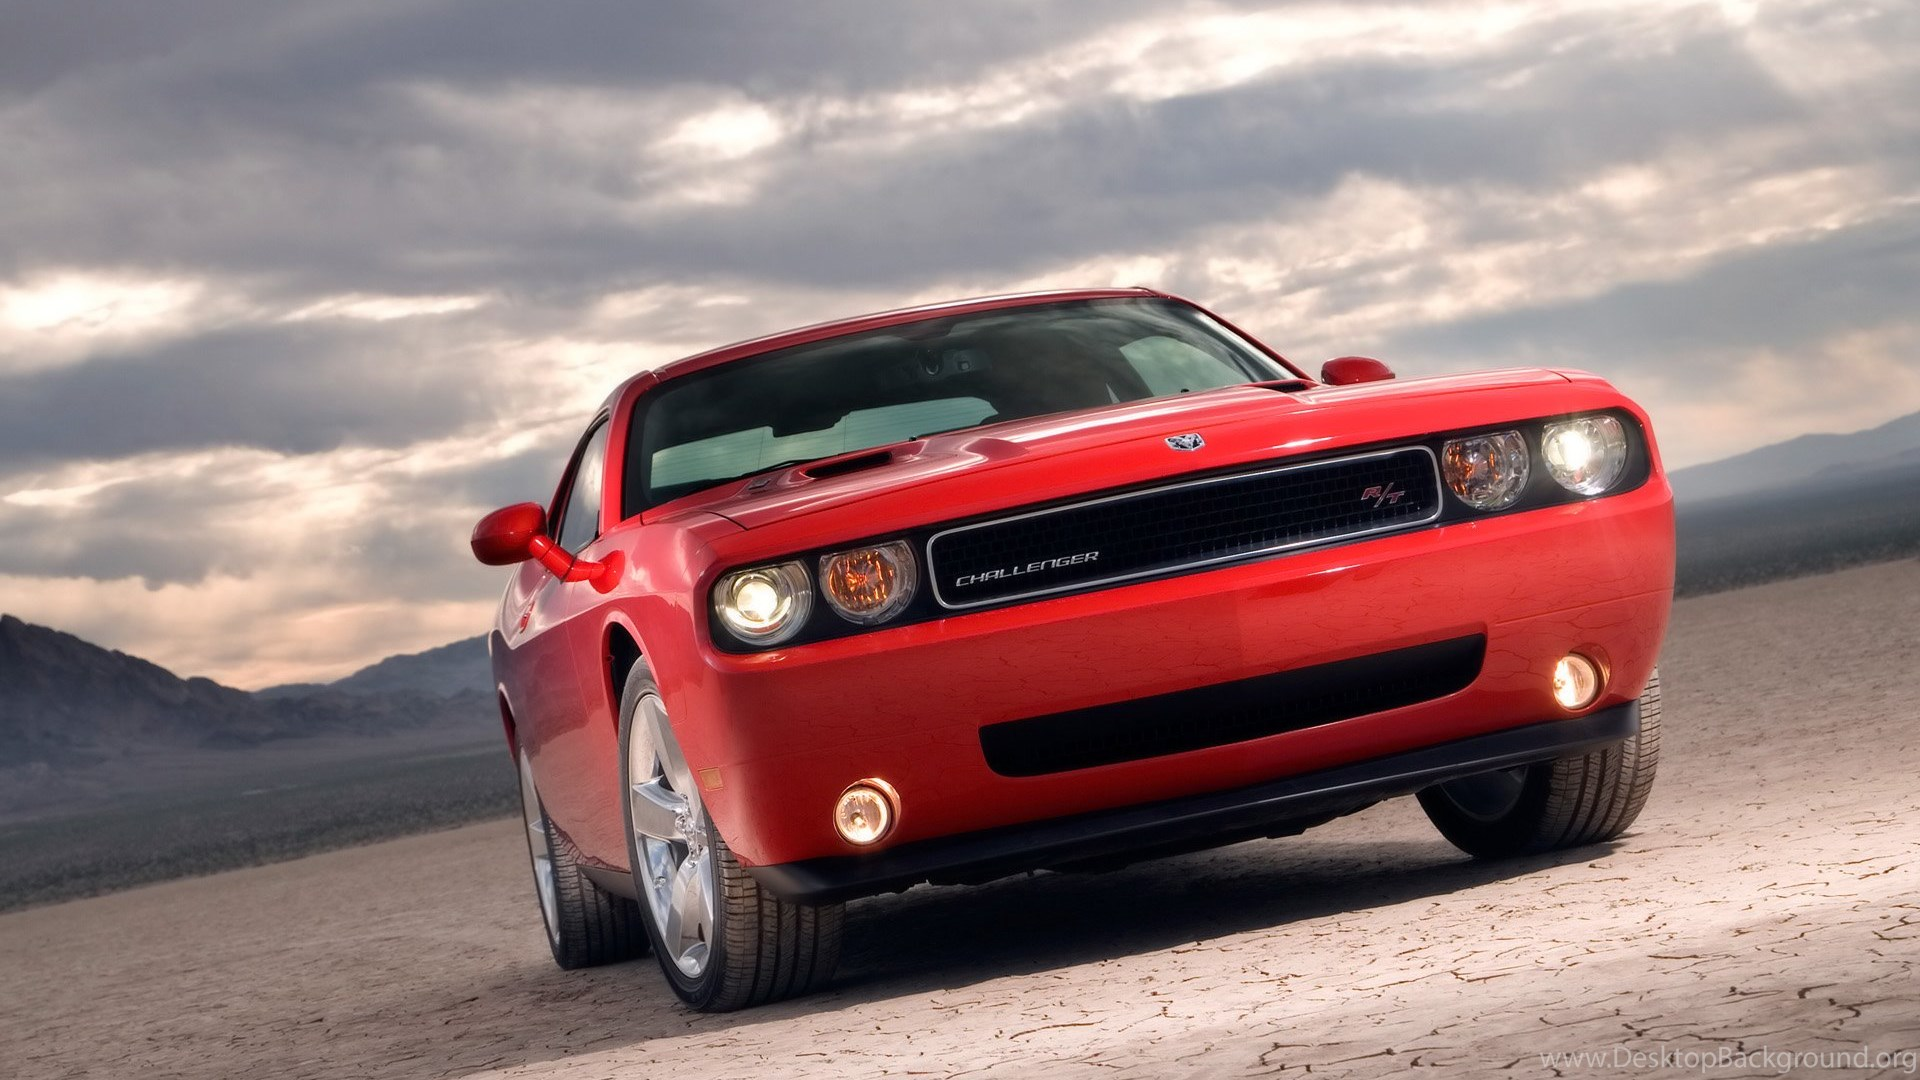 889678 dodge challenger desktop wallpapers hd wallpaper backgrounds